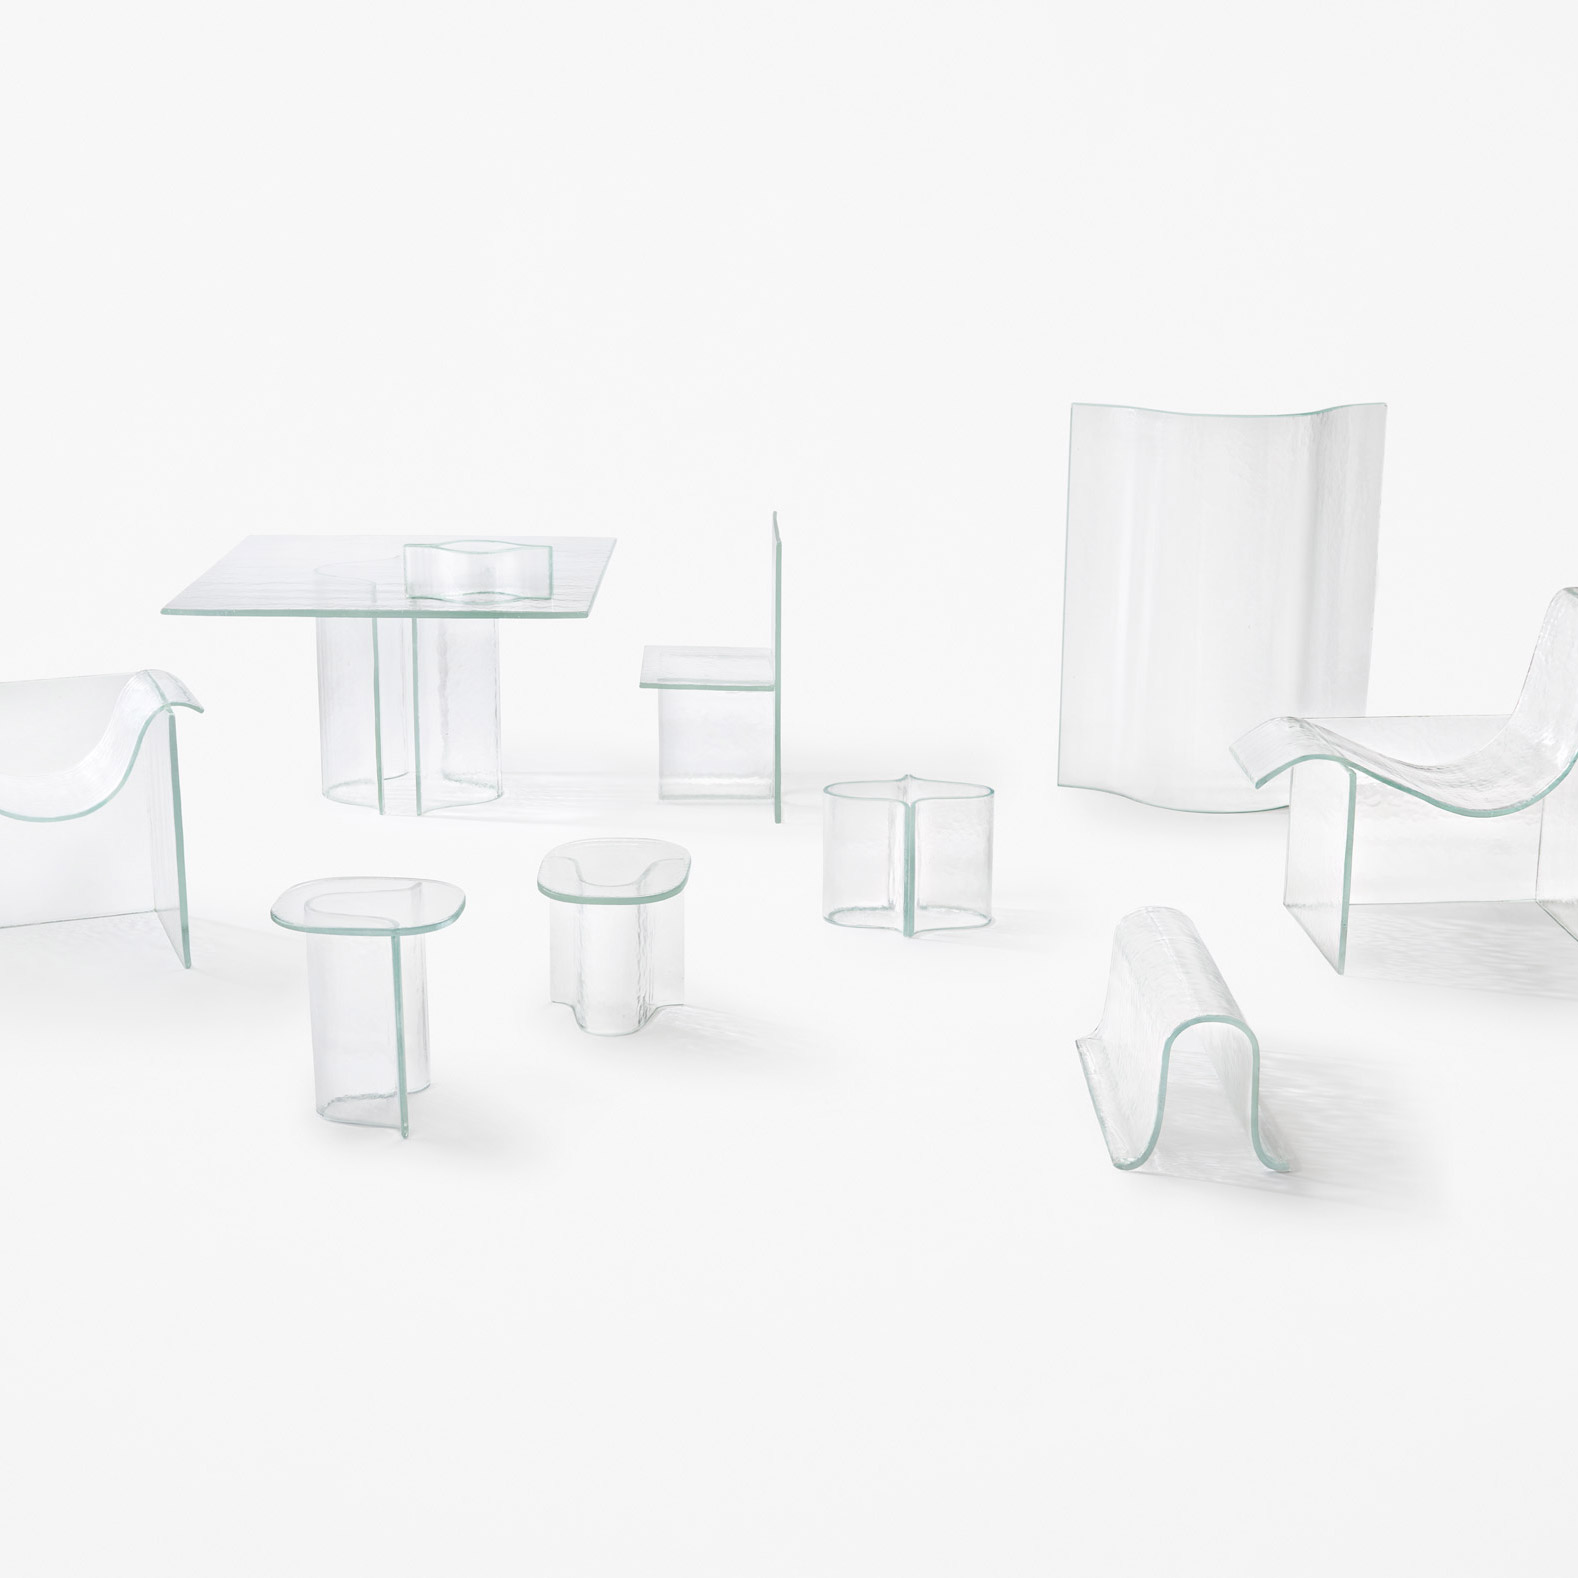 Milan design week guide: Shape of Gravity